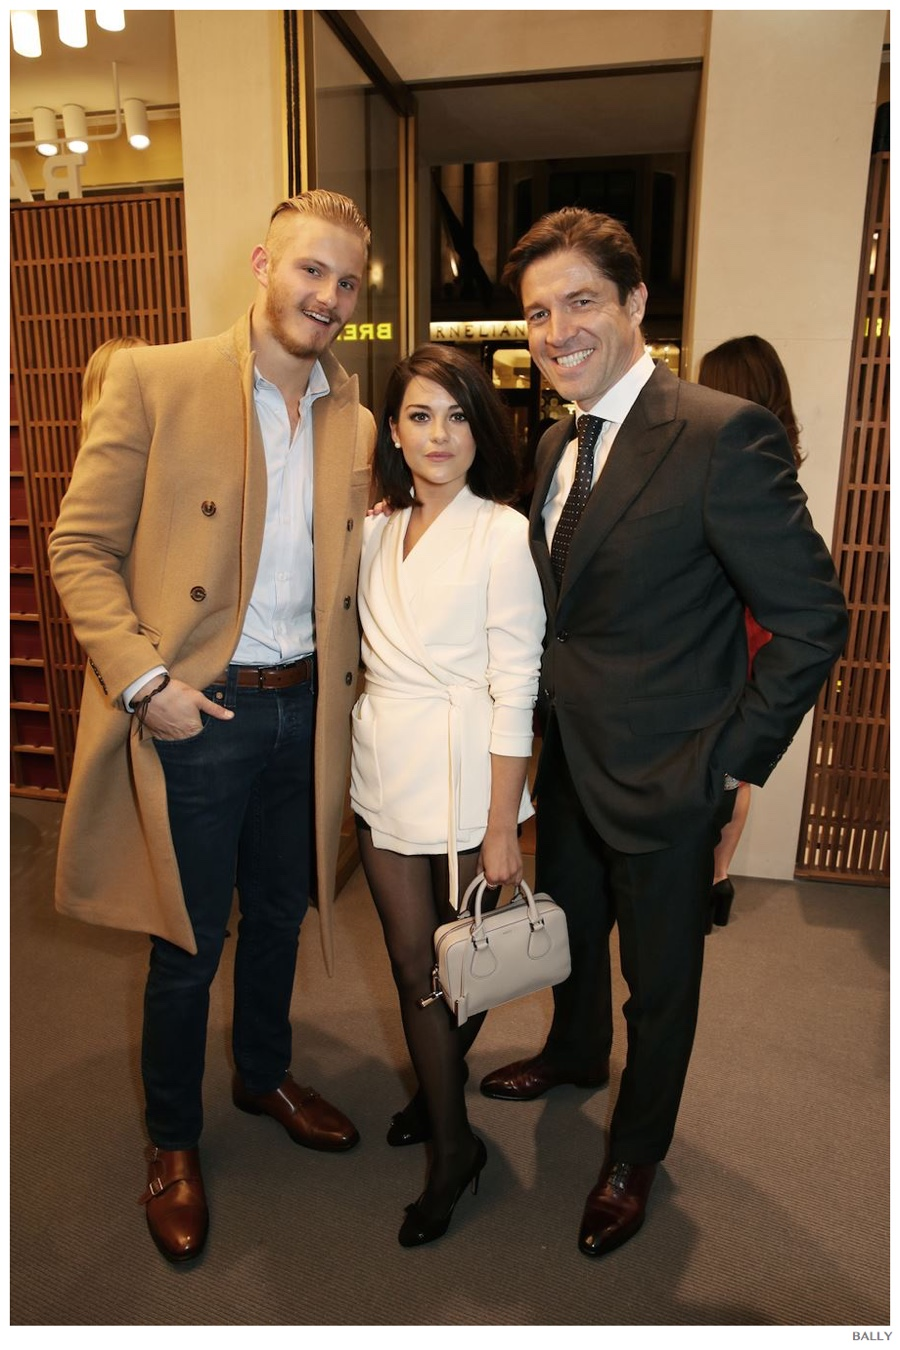 Dapper in a camel coat, actor Alexander Ludwig poses for a photo with actress Sarah Greene and Bally CEO Frédéric de Narp.